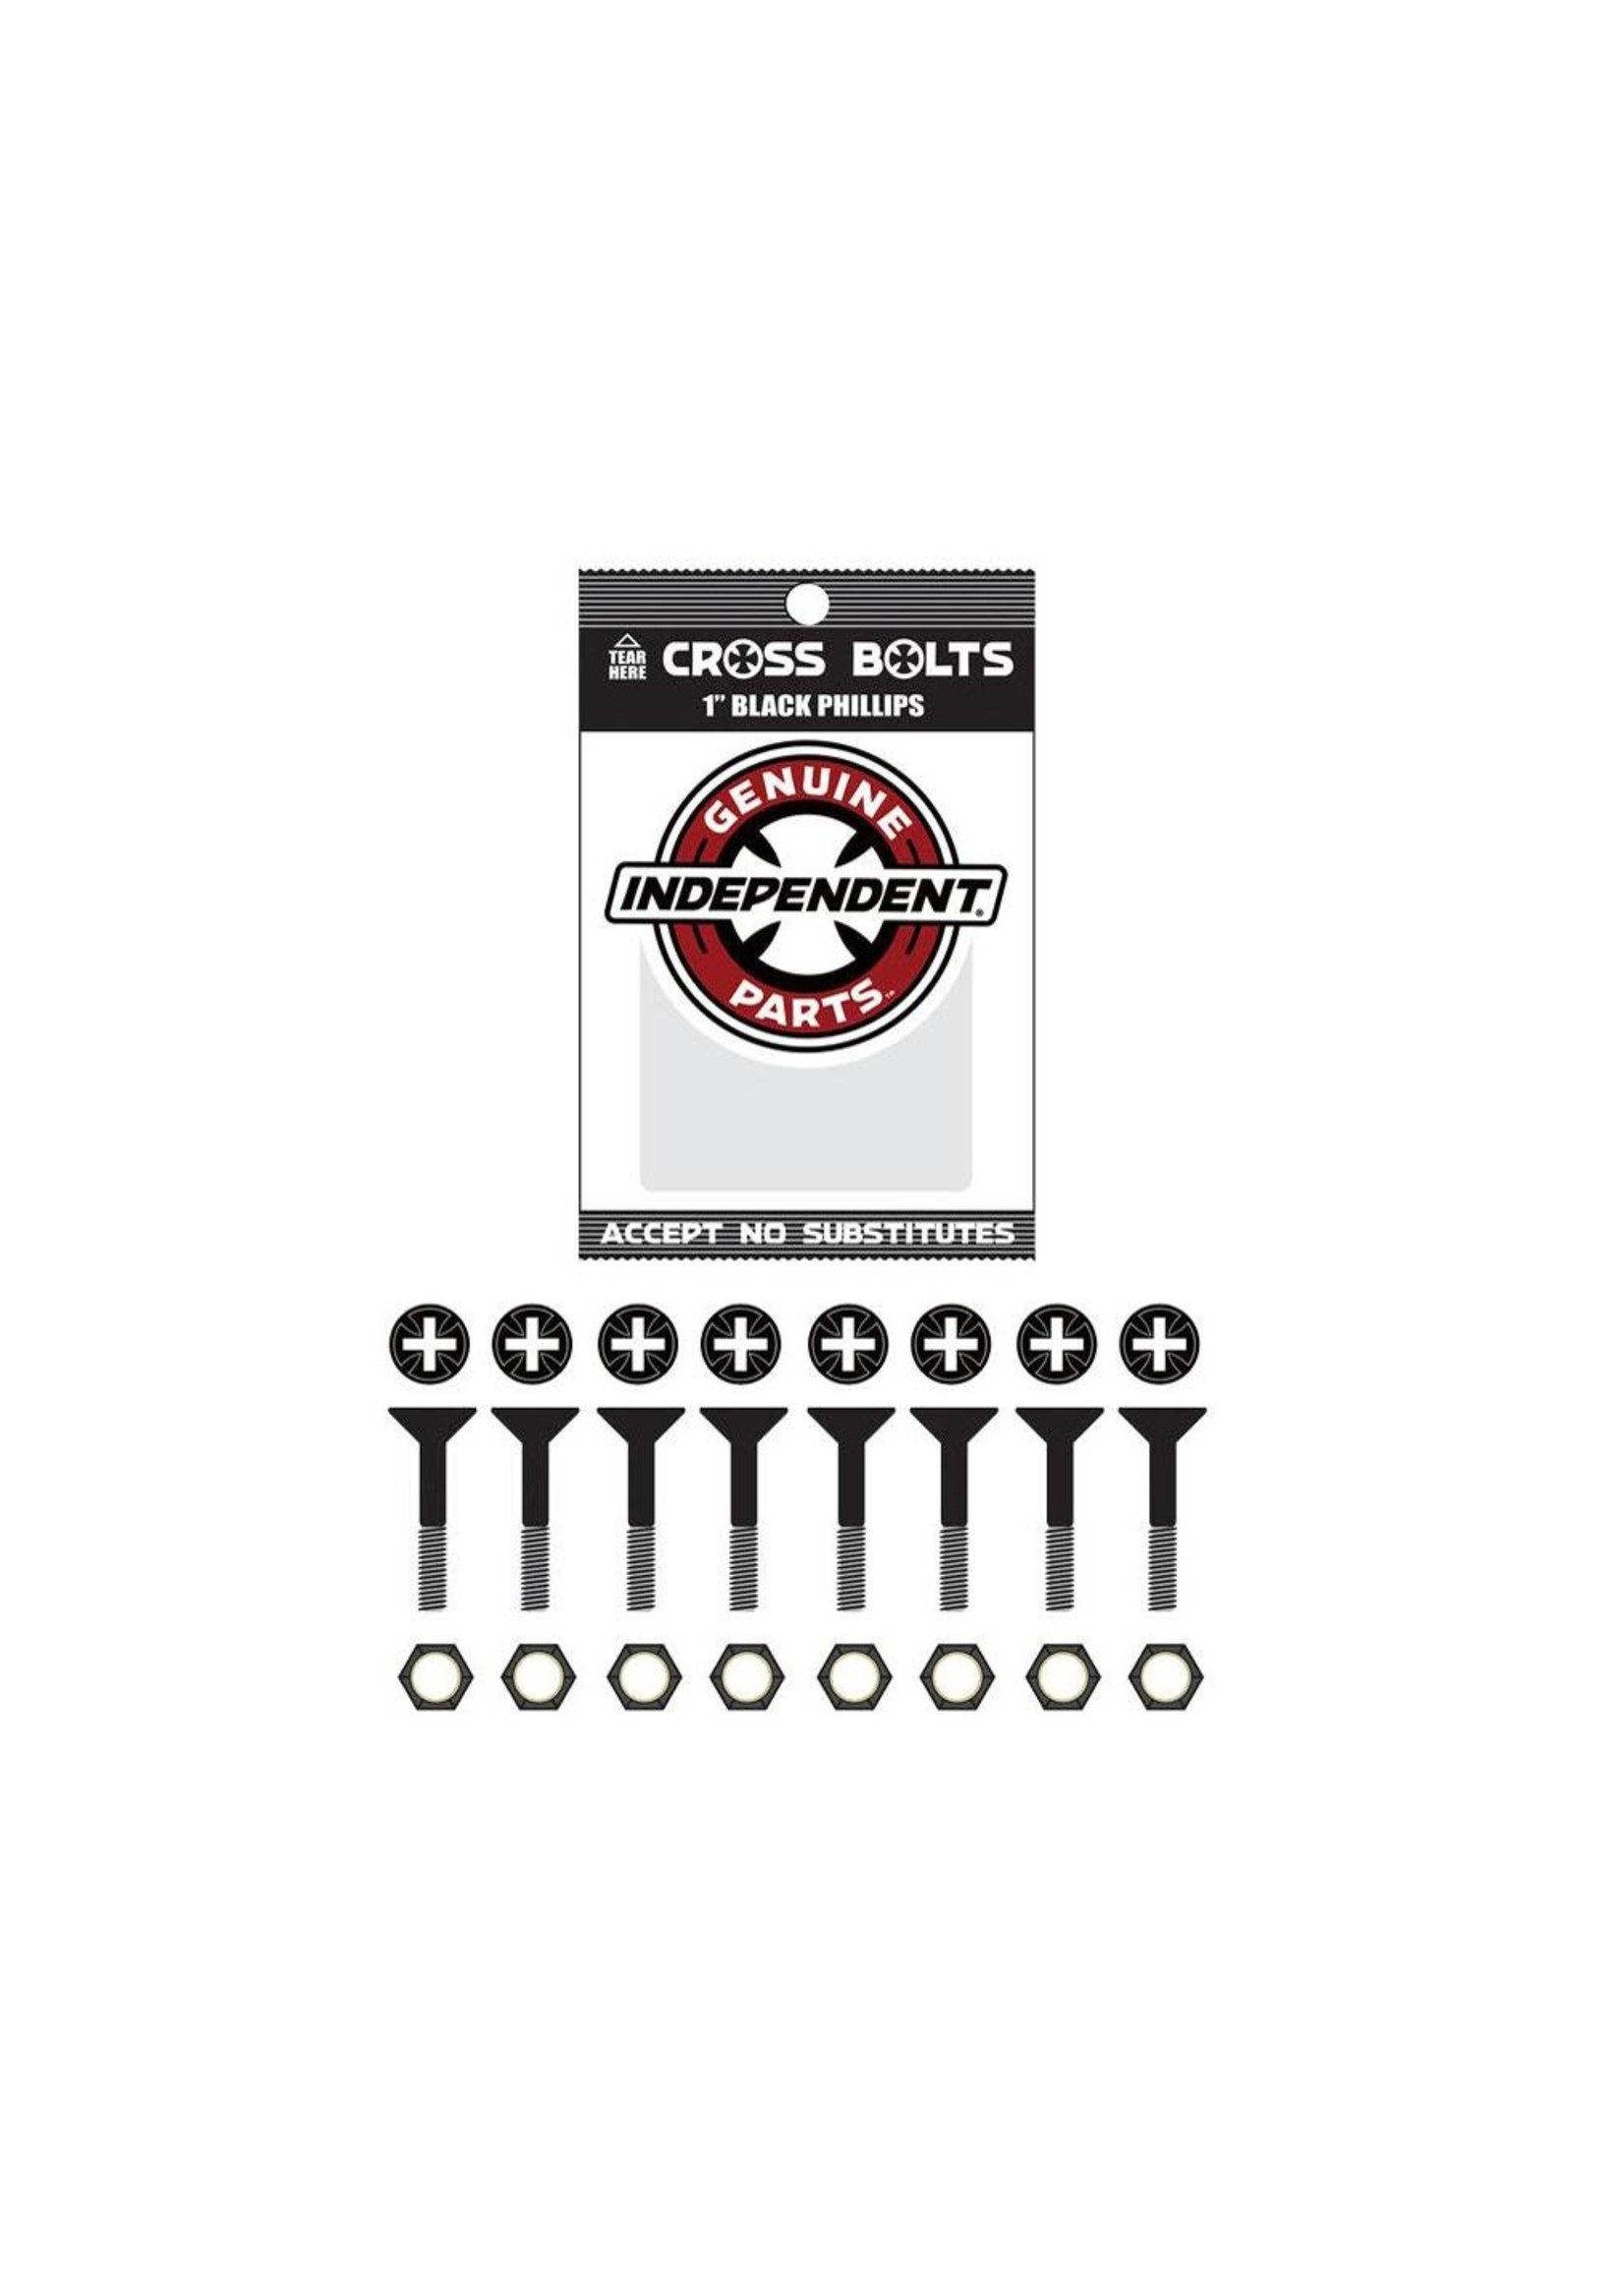 Independent Independent Cross Bolts 1 inch Phillips